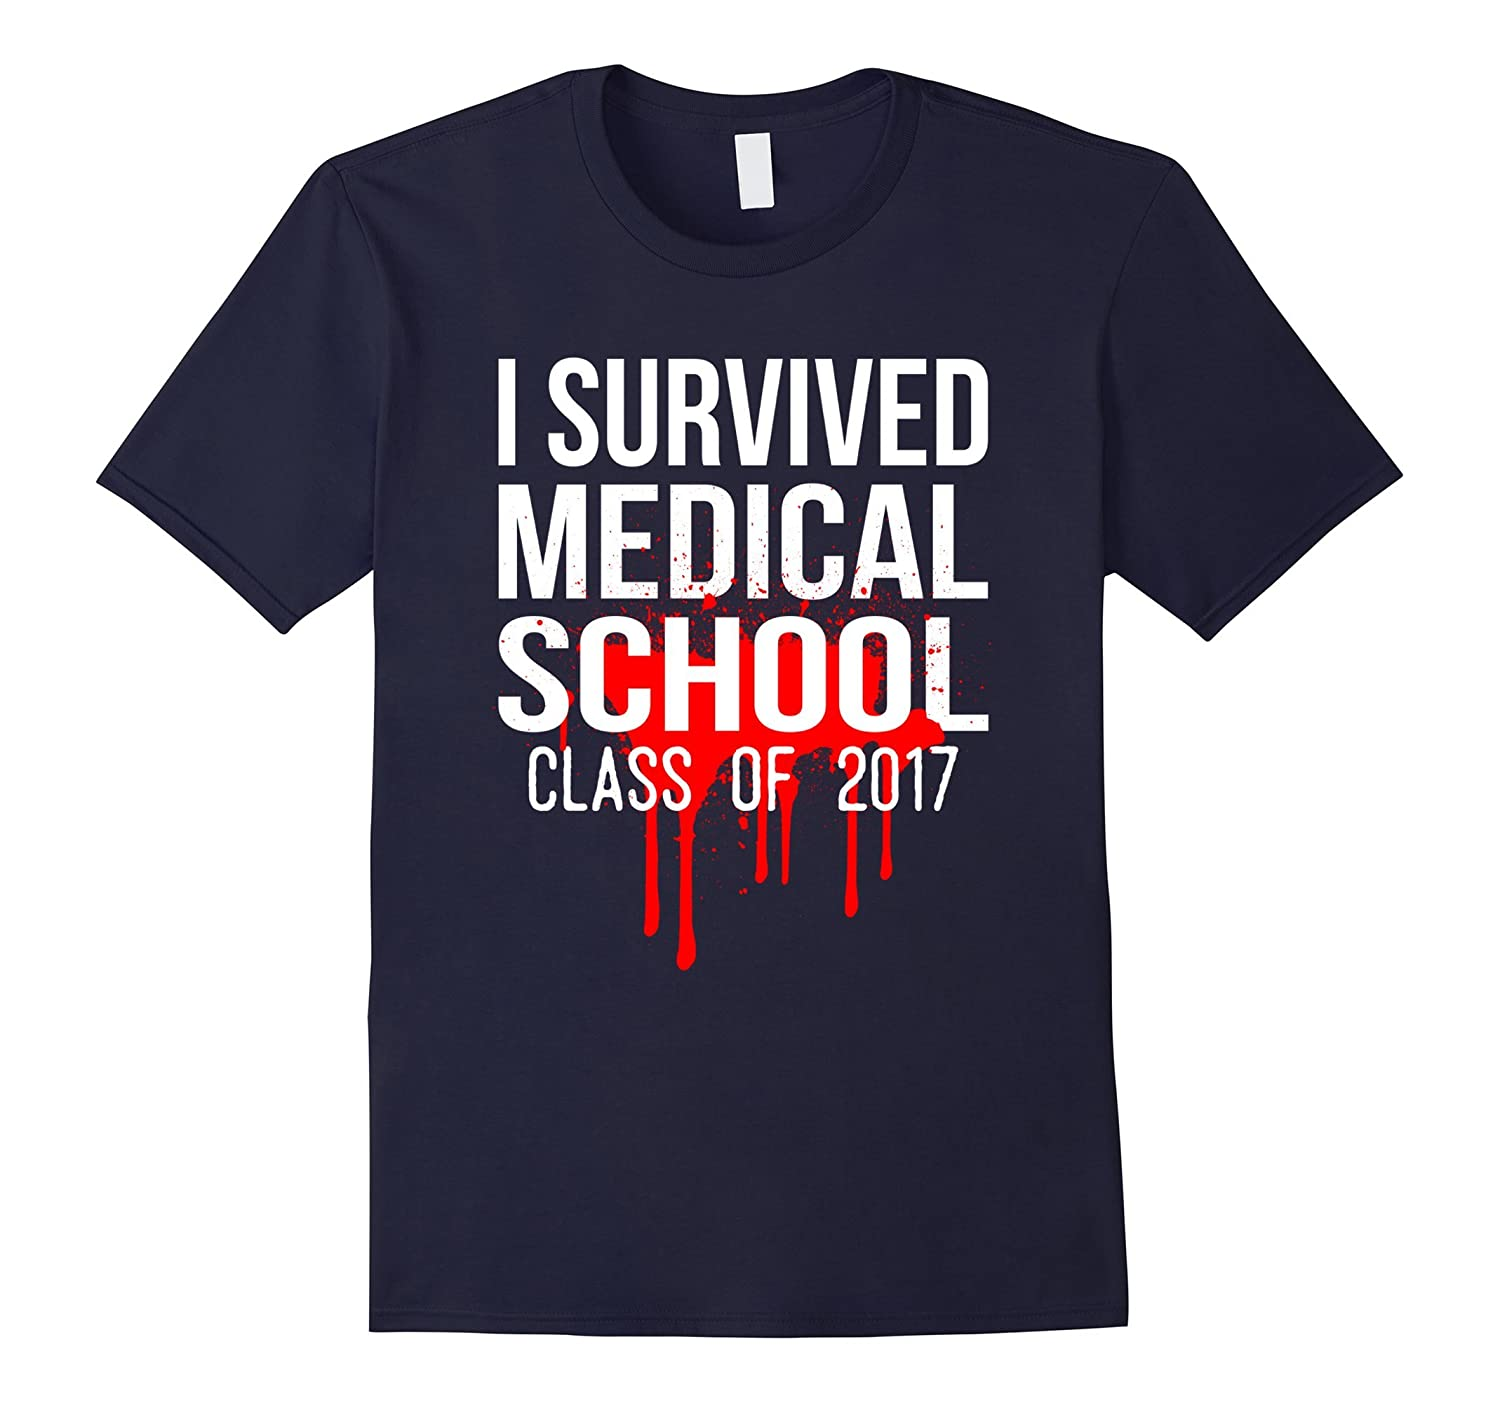 I Survived Medical School Class of 2017 Graduation Shirt-Vaci